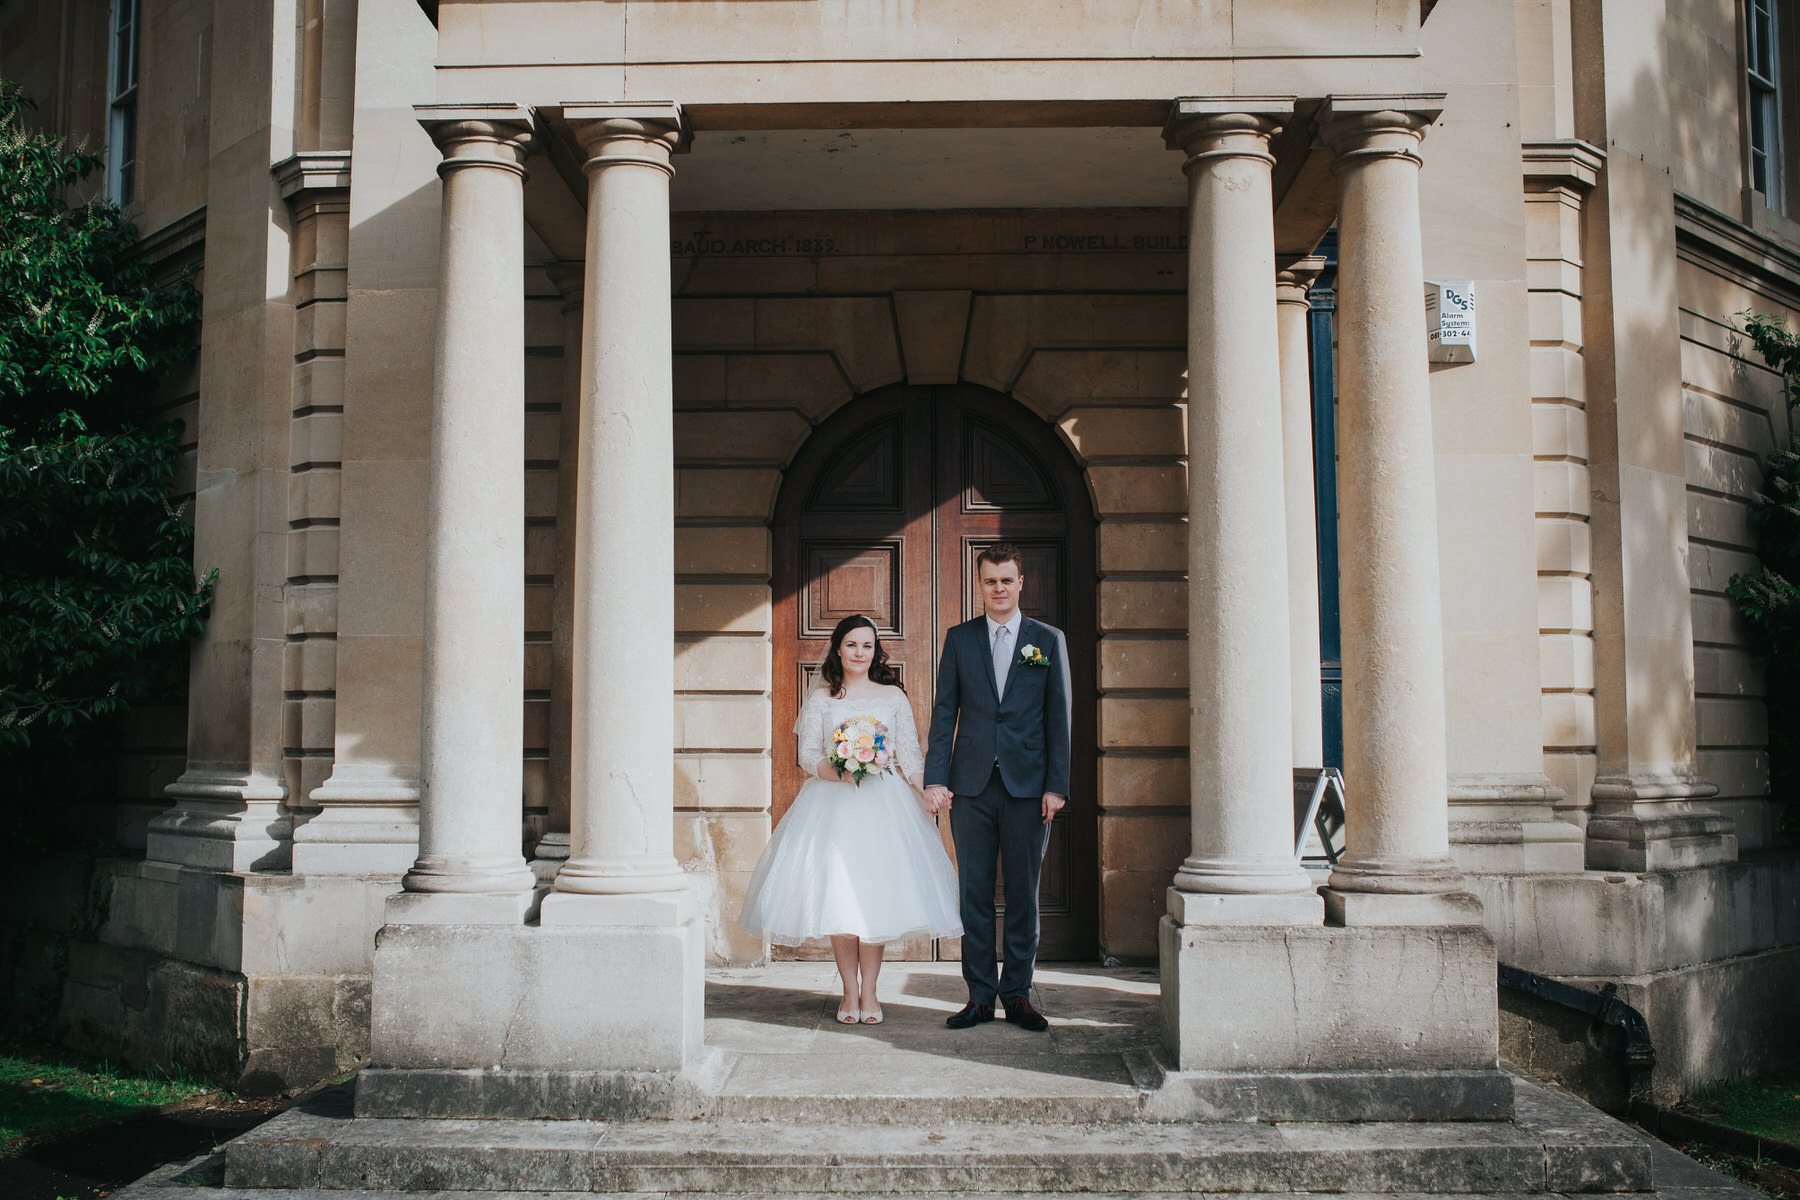 103 groom bride wedding portraits Brompton Cemetery collonades.jpg